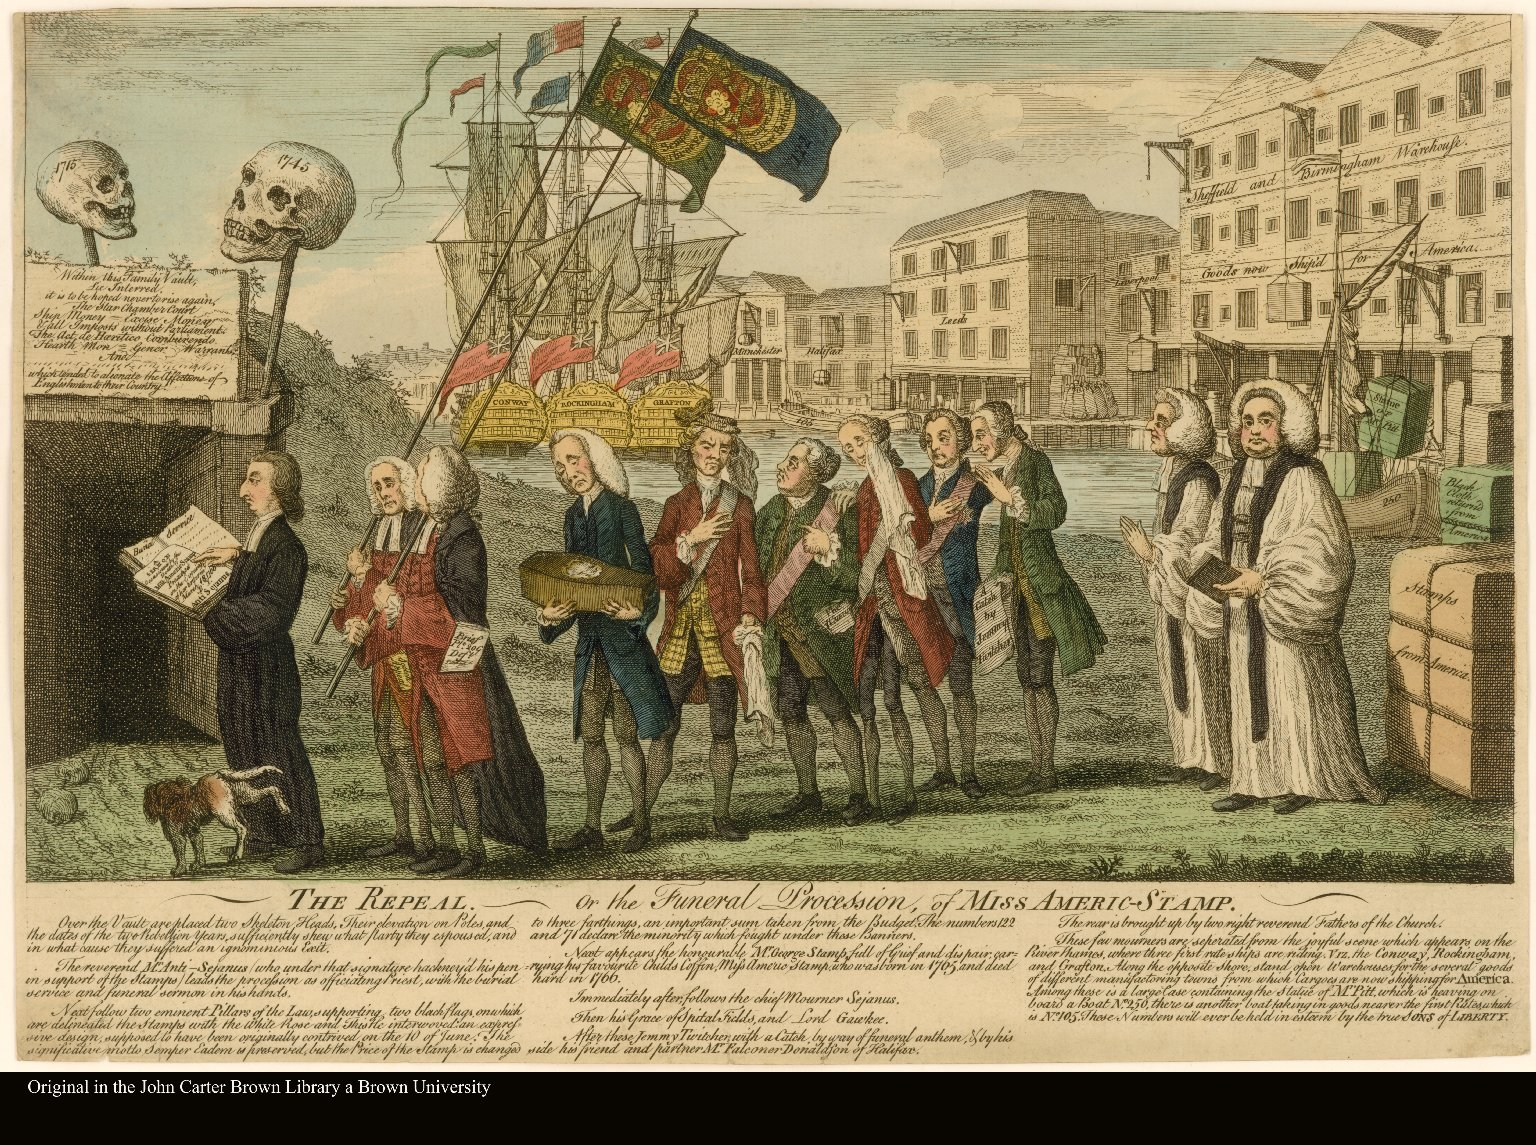 THE REPEAL. or the Funeral Procession, of MISS AMERIC-STAMP.